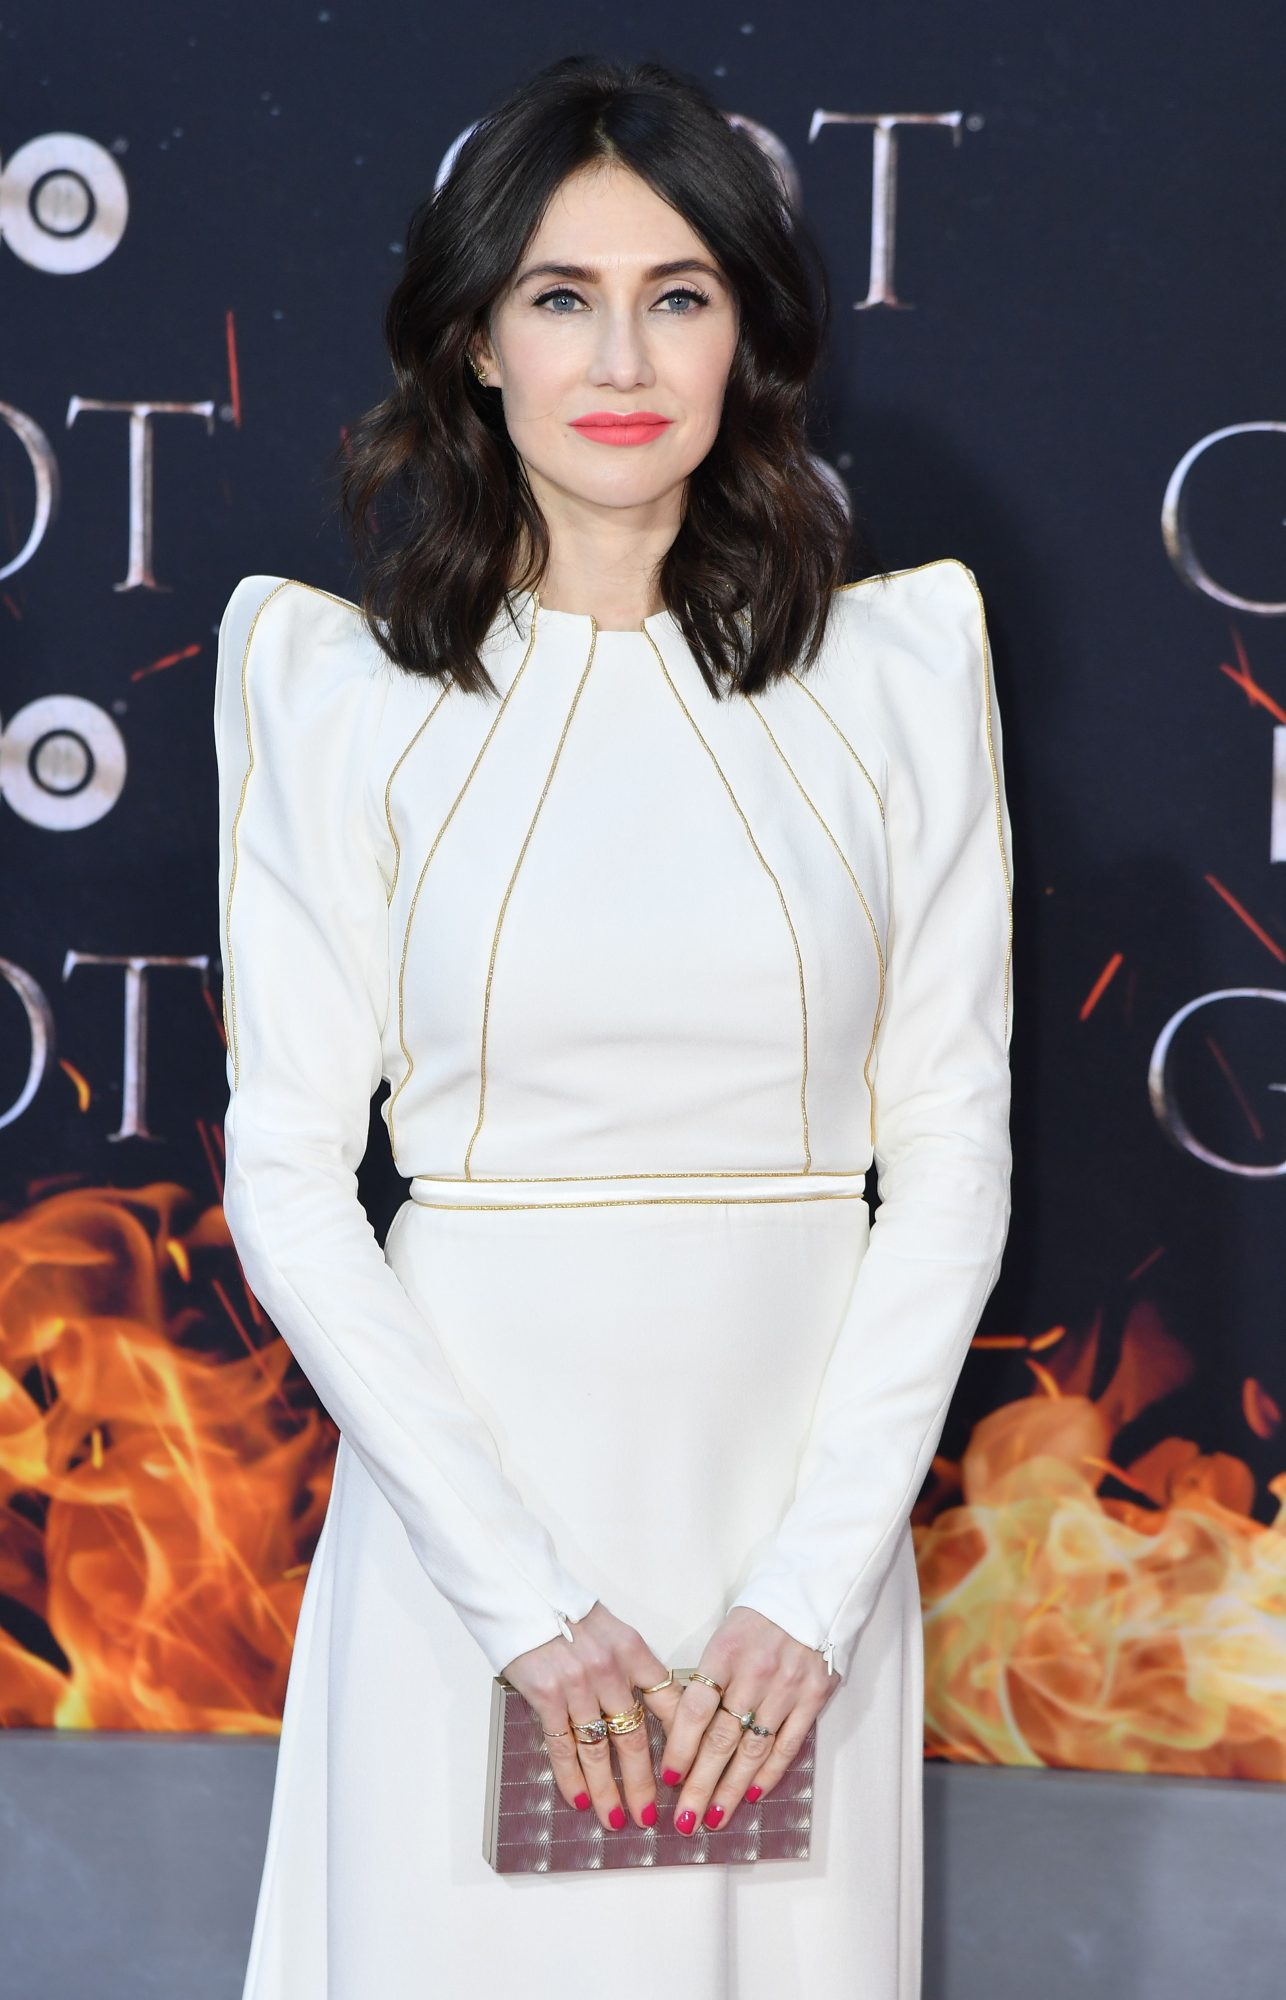 """Dutch actress Carice van Houten arrives for the """"Game of Thrones"""" eighth and final season premiere at Radio City Music Hall on April 3, 2019 in New York city. (Photo by Angela Weiss / AFP)        (Photo credit should read ANGELA WEISS/AFP/Getty Images)"""